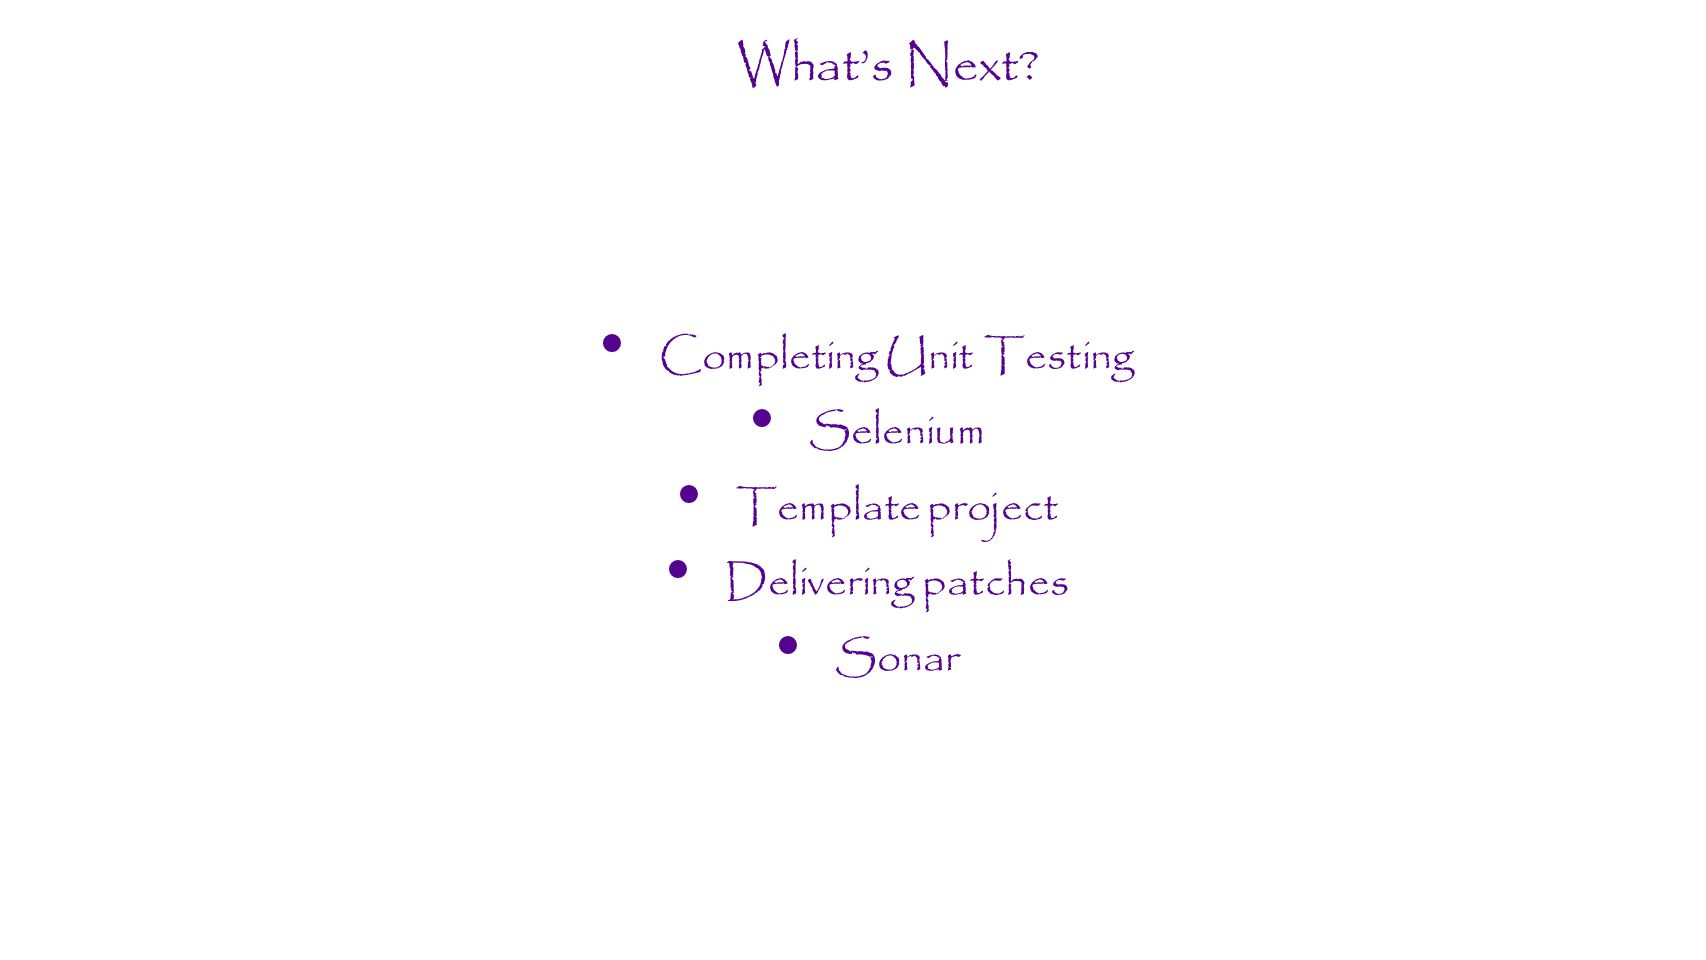 Completing Unit Testing